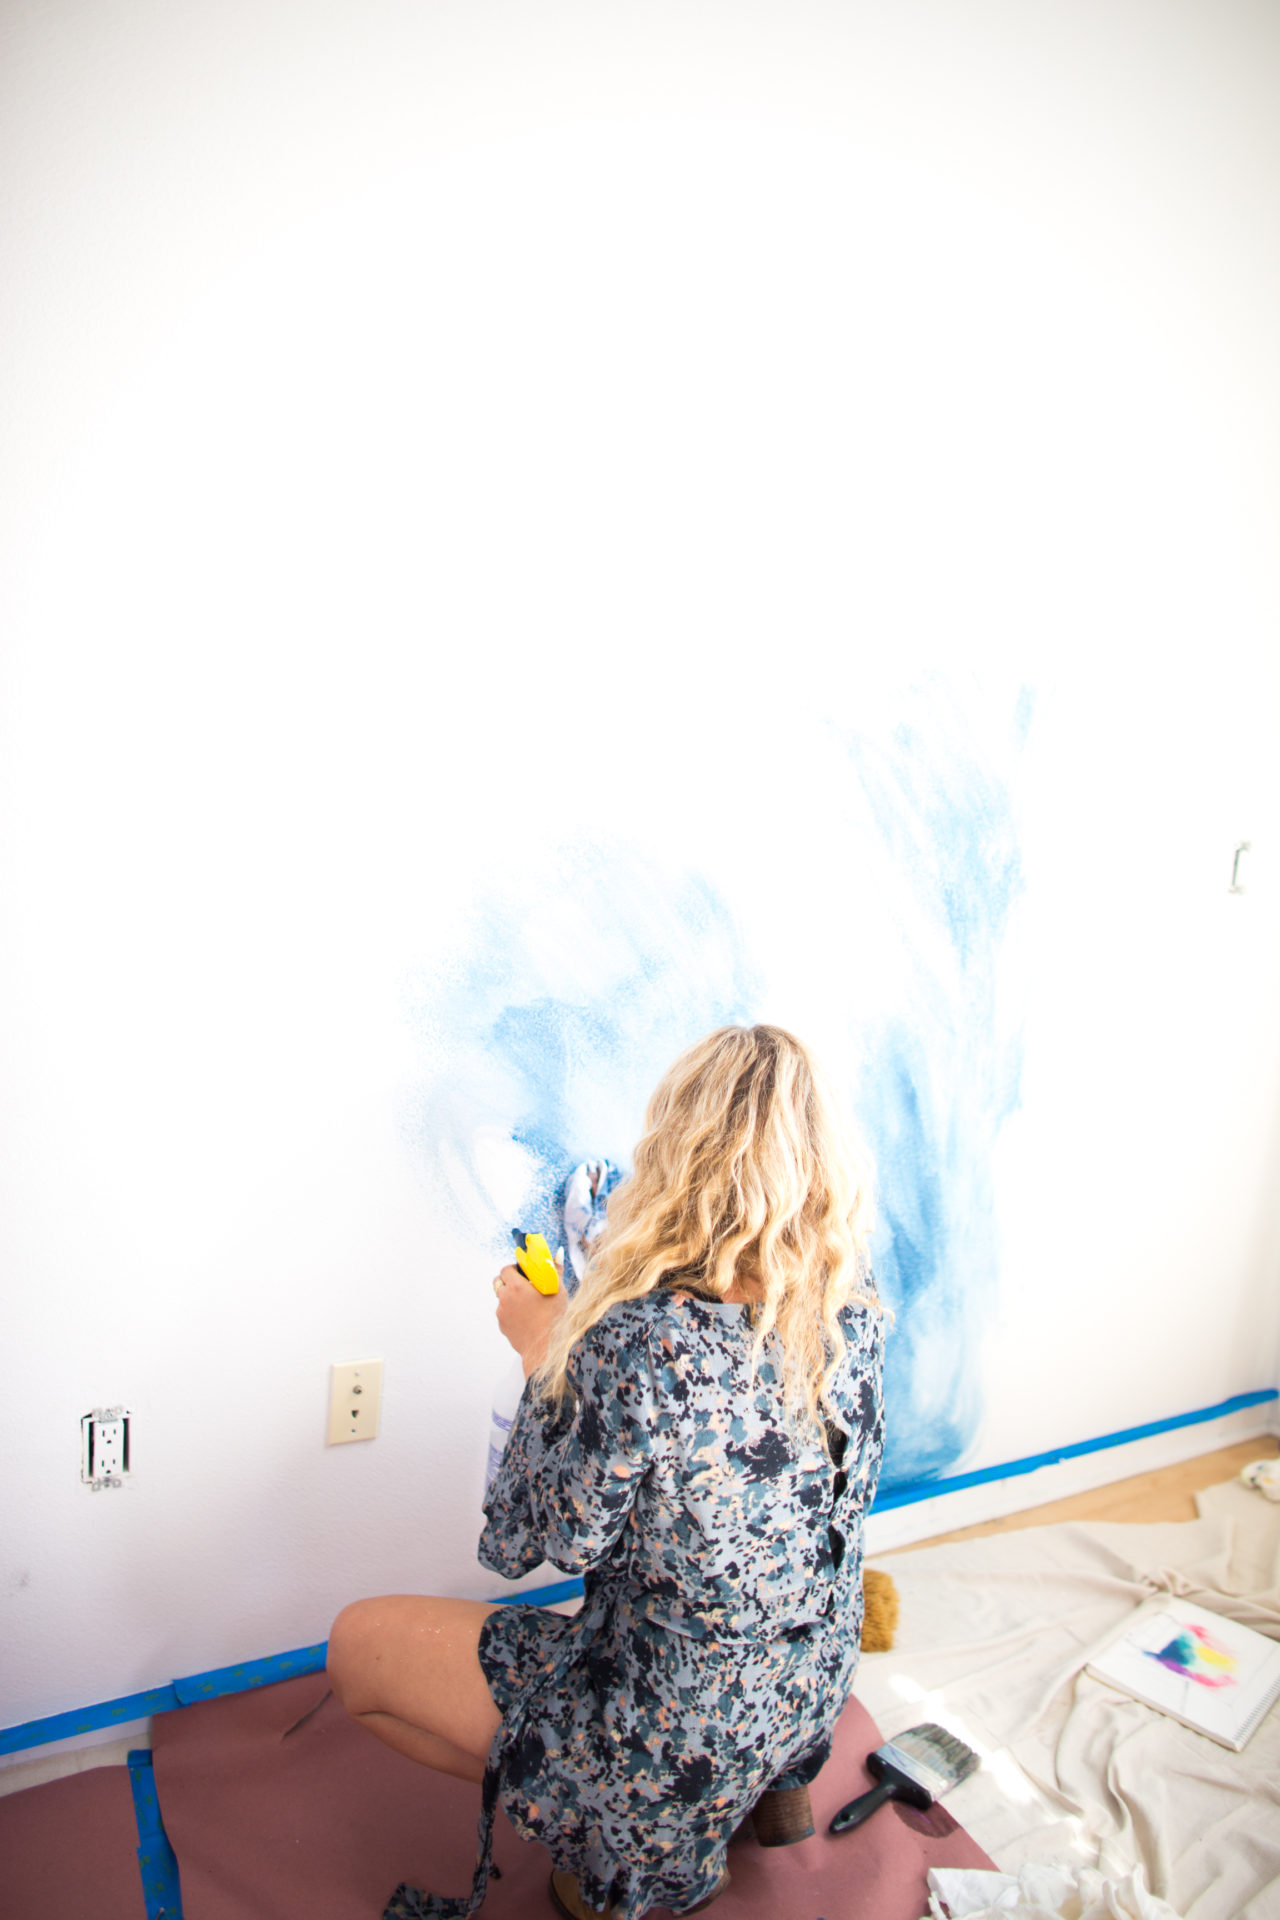 MrKate_DIY_WaterColorMural (4 of 18)